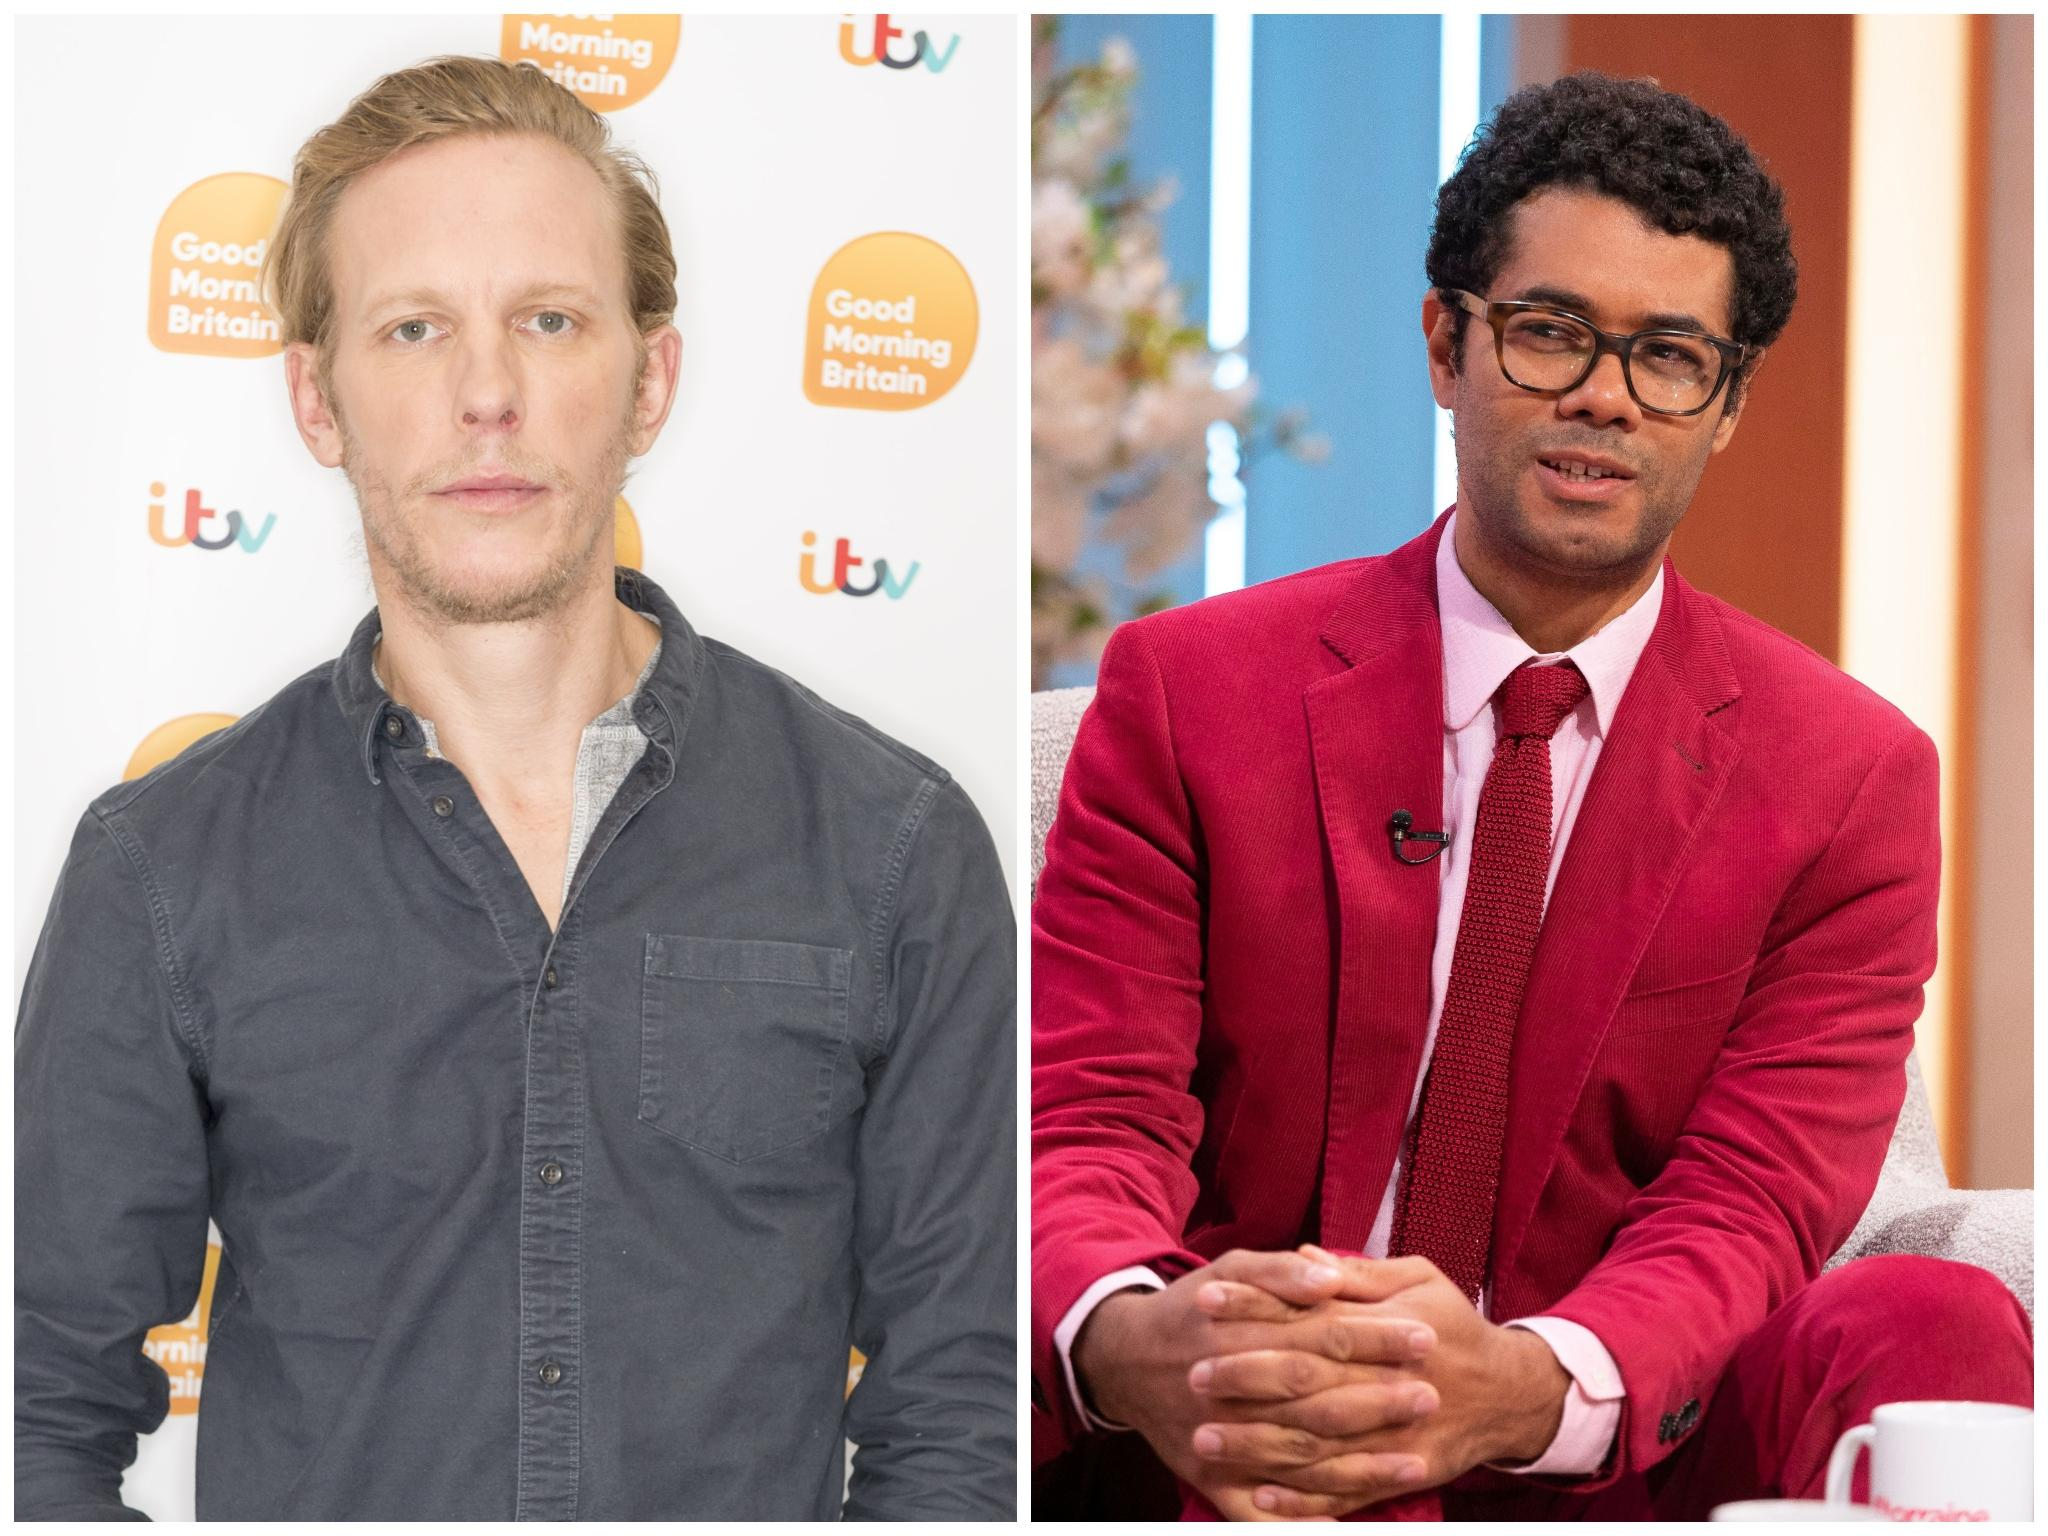 Laurence Fox Reveals Brother In Law Richard Ayoade S Furious Reaction To Question Time Race Row The Independent The Independent